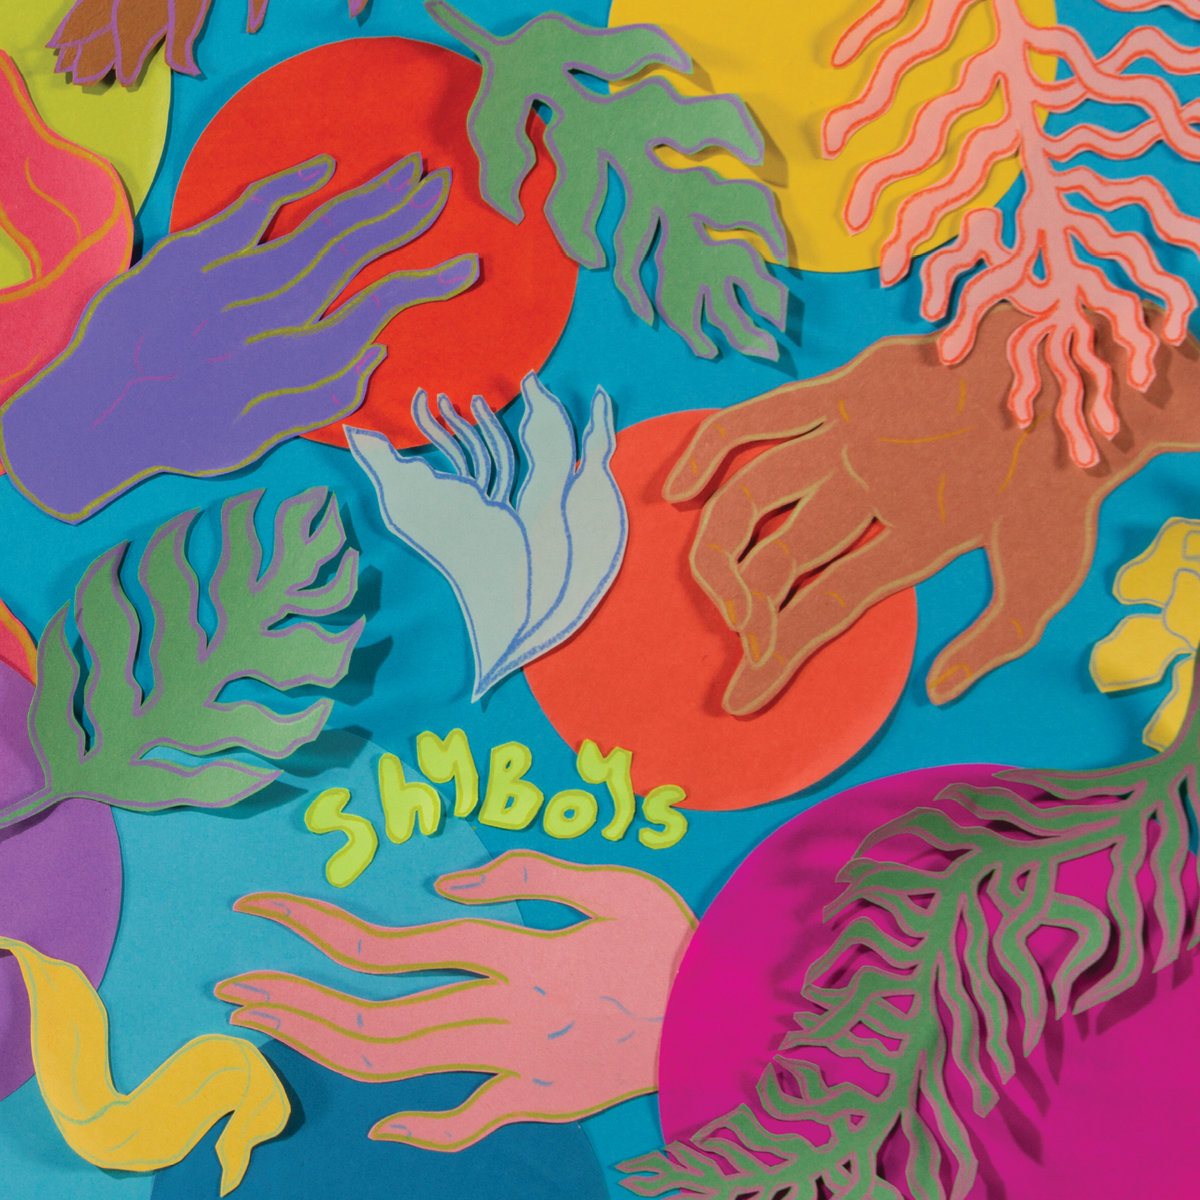 Shy Boys 'Bell House' LP review for Northern Transmissions by Leslie Chu